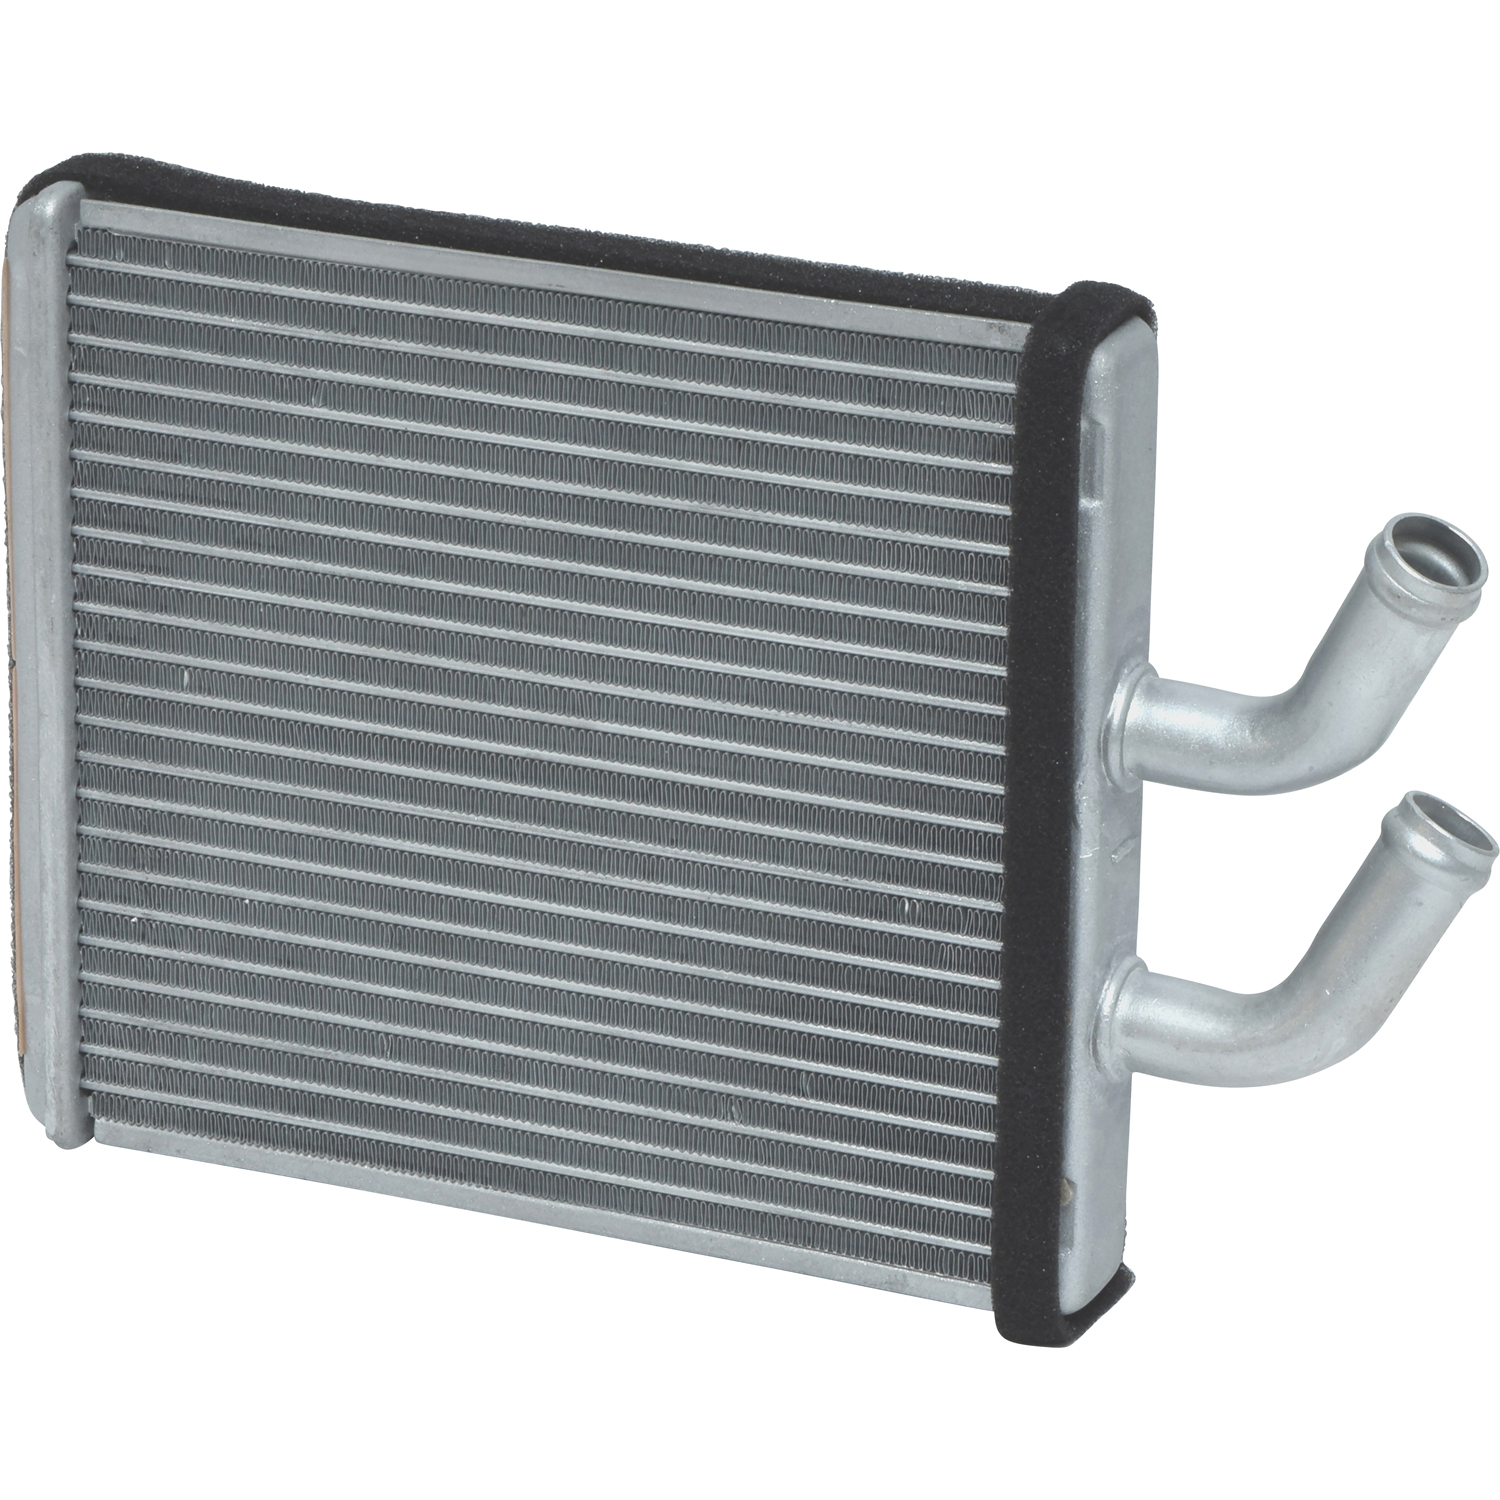 New HVAC Heater Core HT 2089C - 0K30A61A10 For Rio